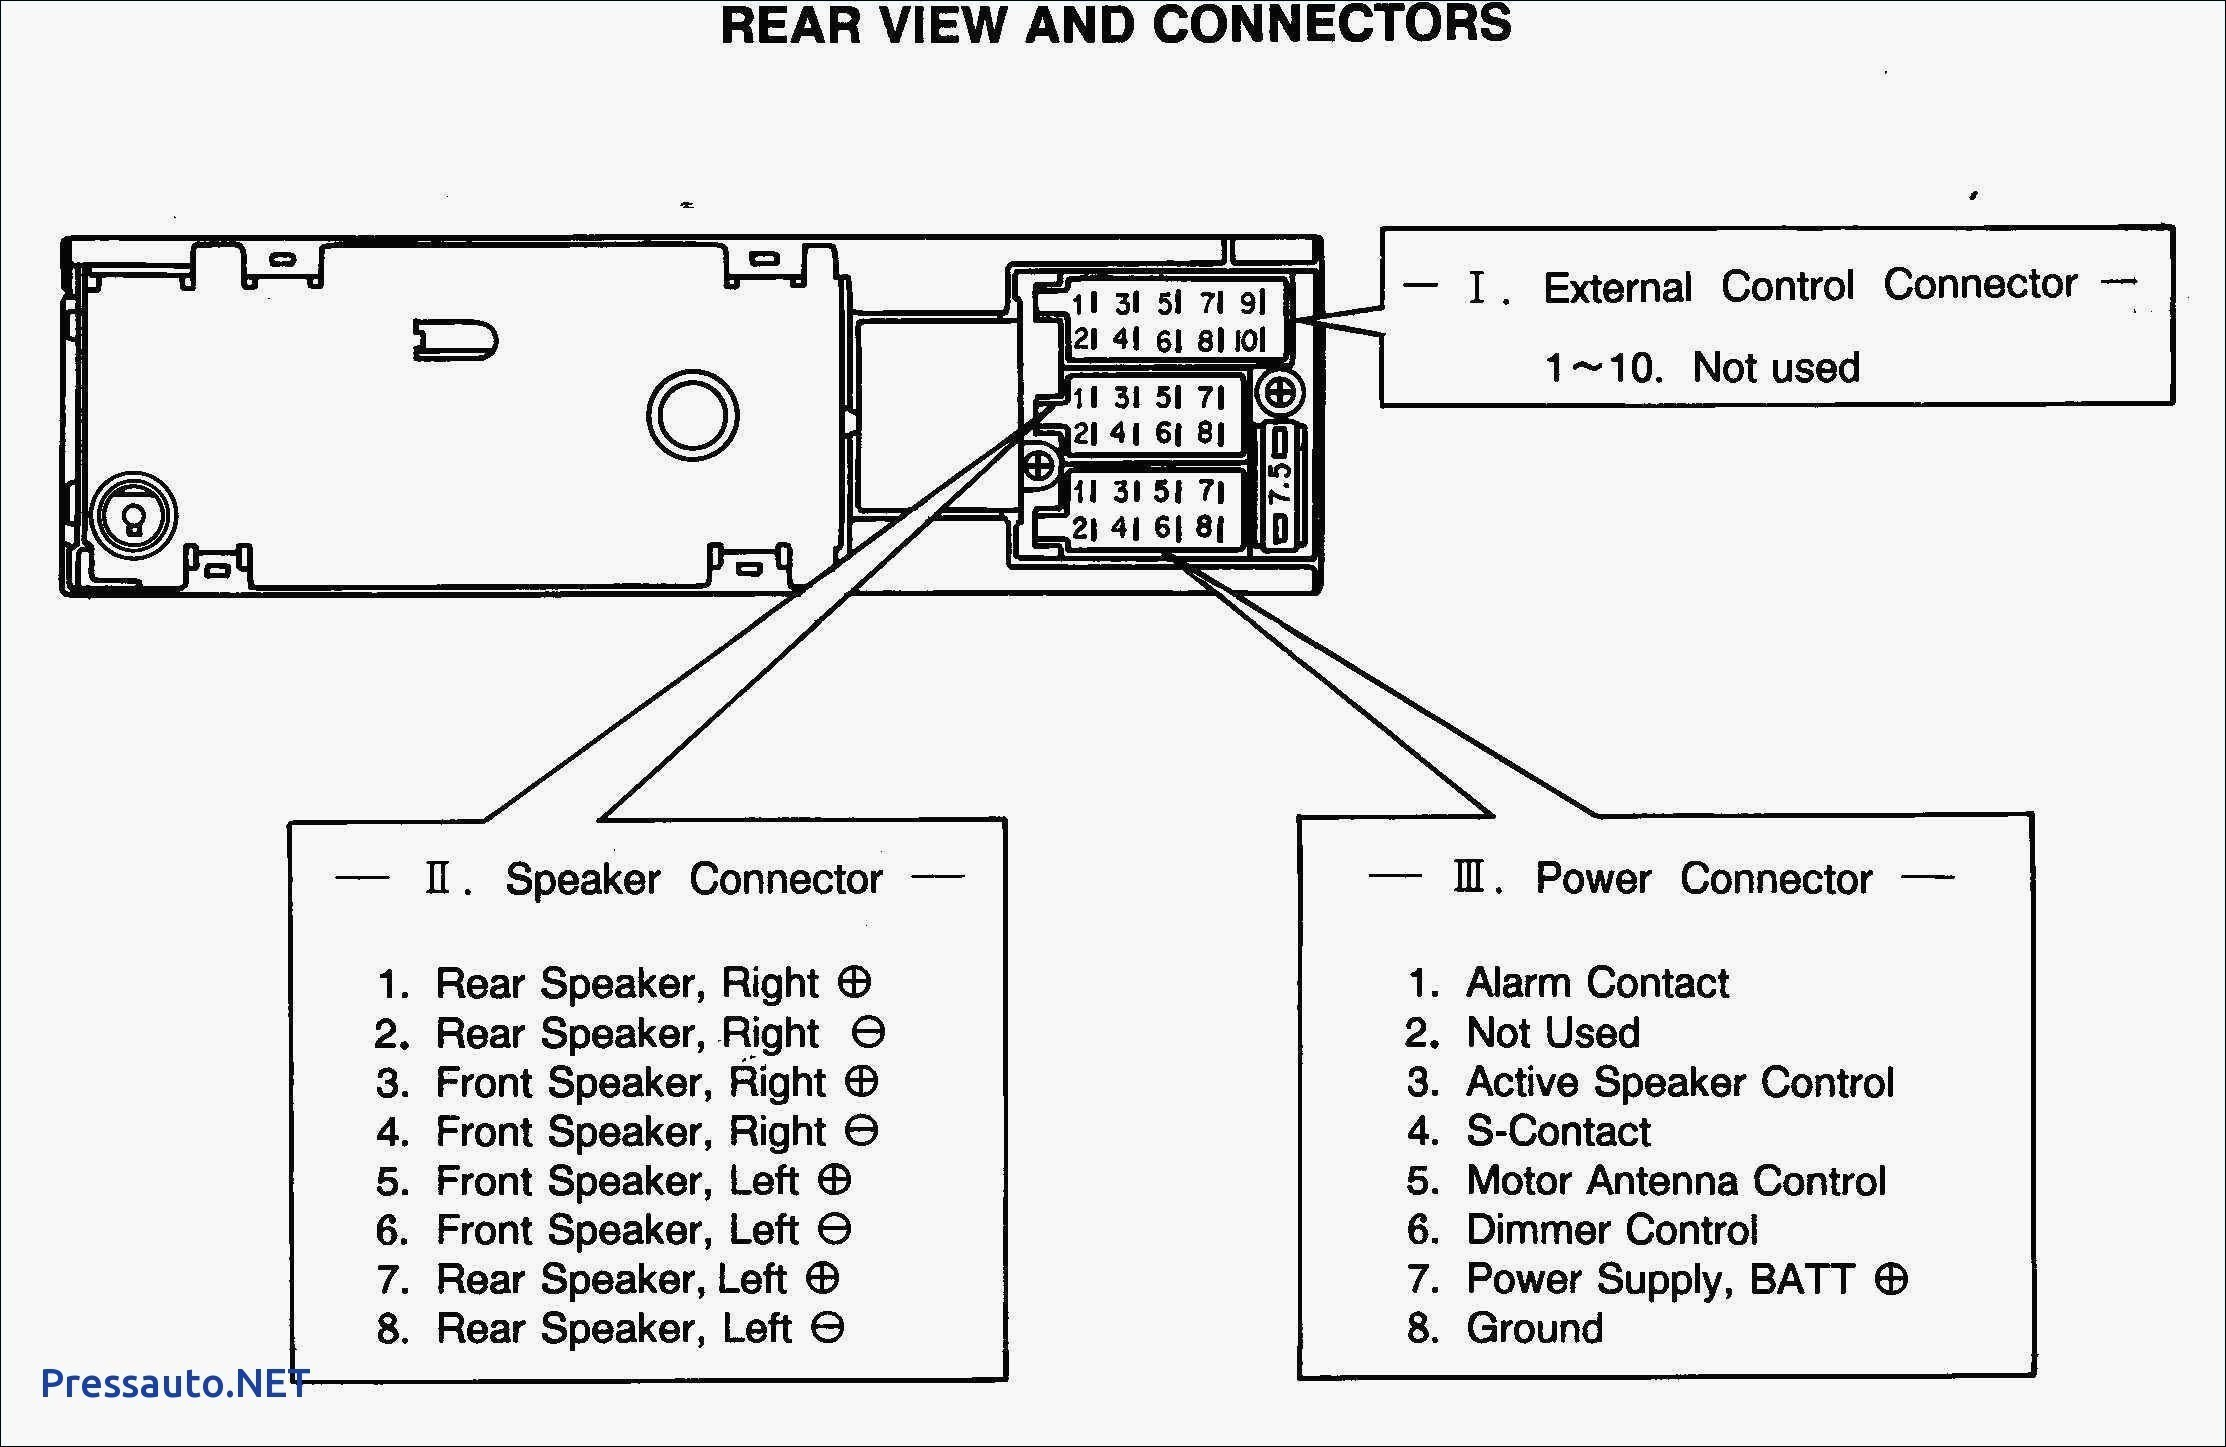 aftermarket radio wiring diagram residential electric meter unique image